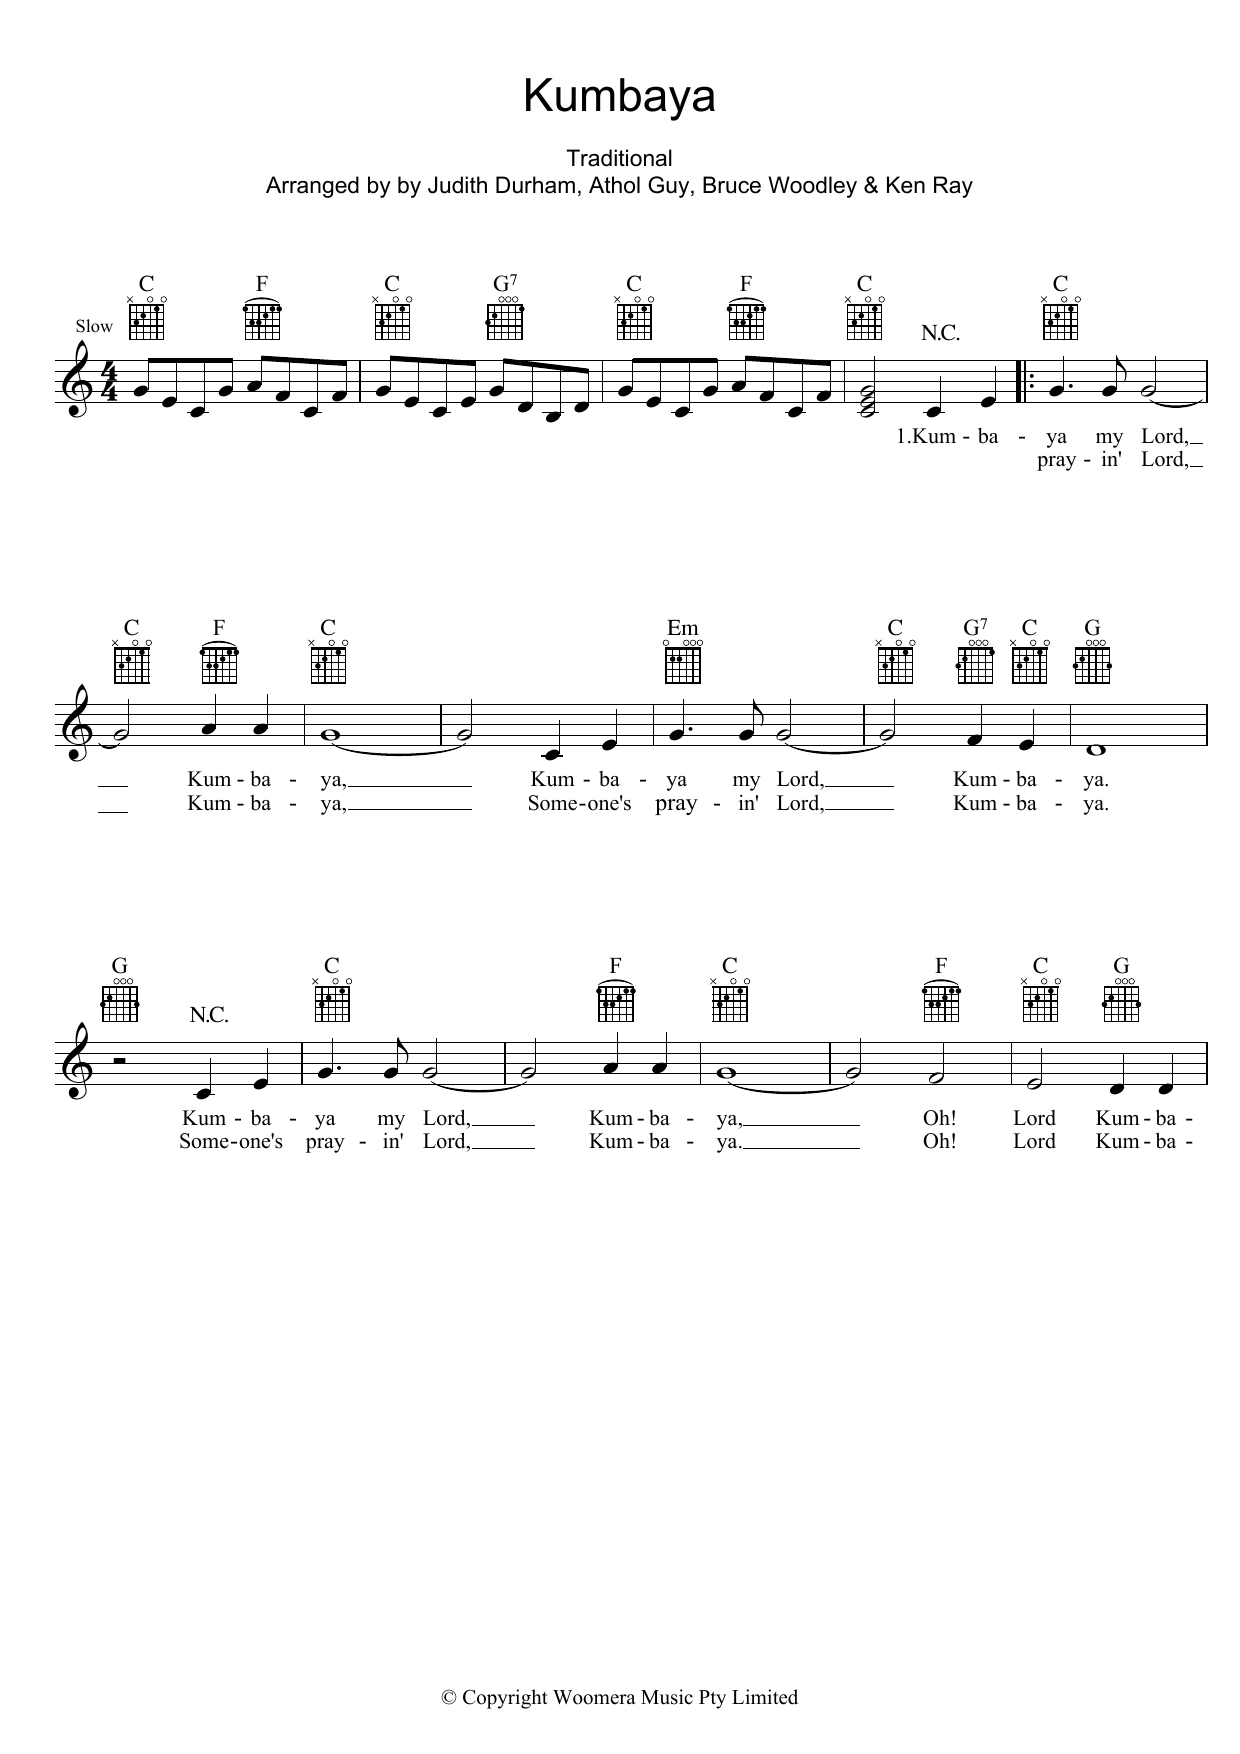 Kumbaya Sheet Music